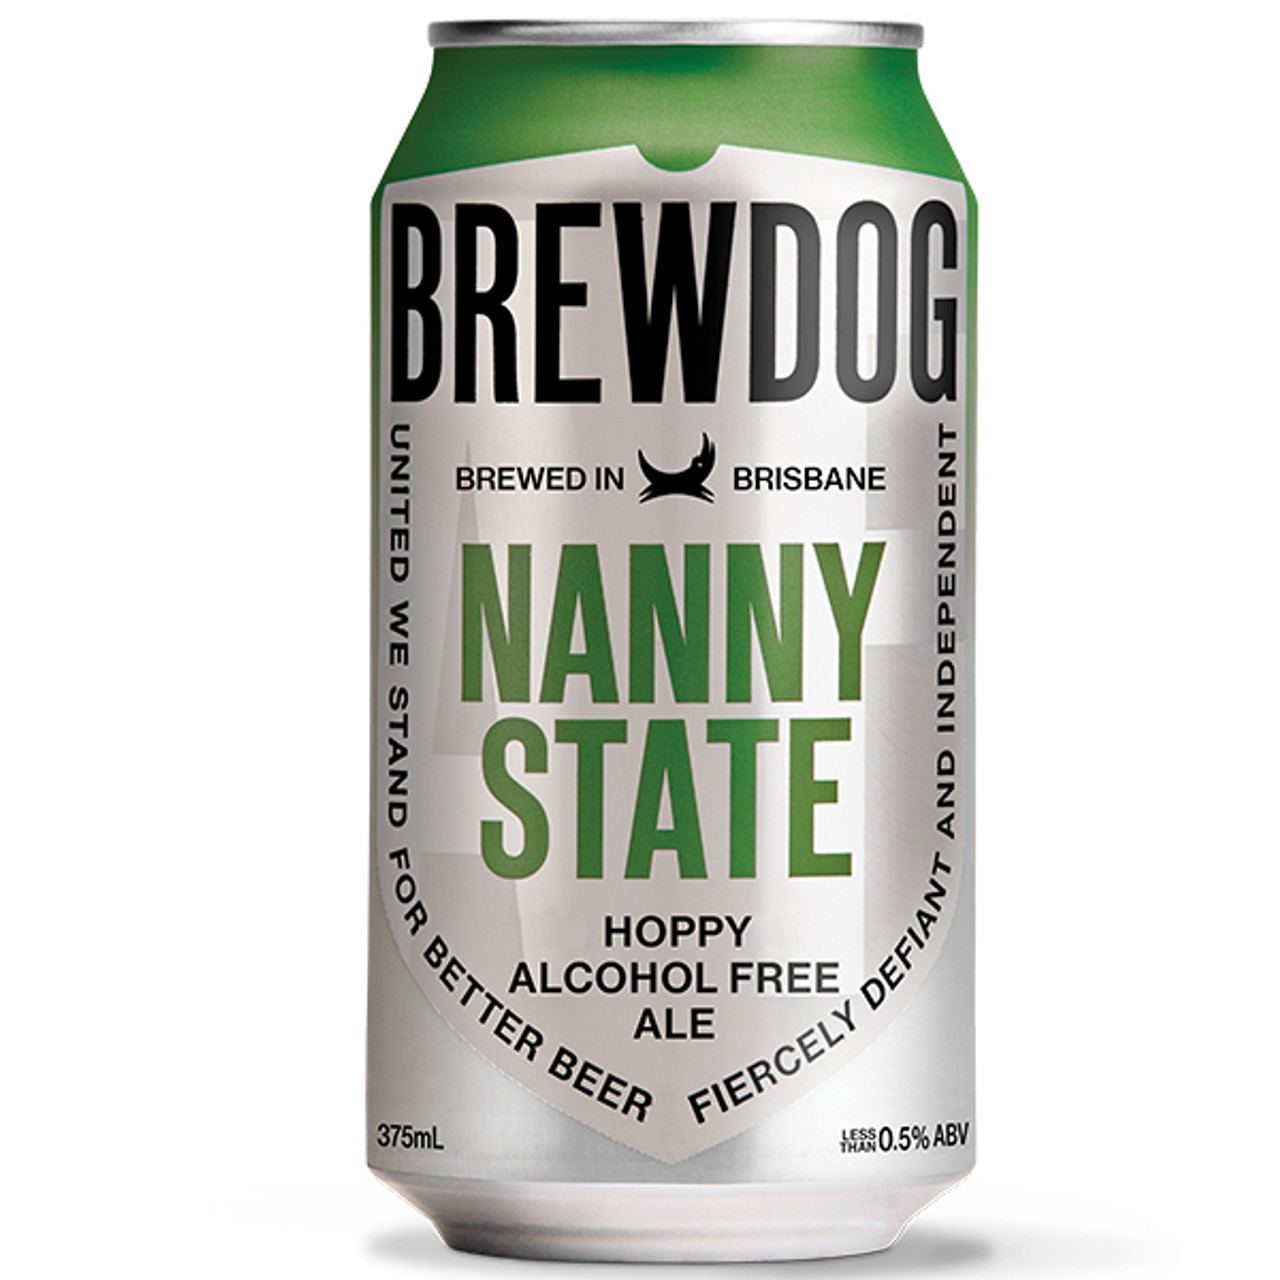 Picture of a Brewdog, Nanny State, Beer Can. This is a silver can with Green accent near the top. You can buy this non alcoholic beer online in Australia through Rat Dog Drinks.